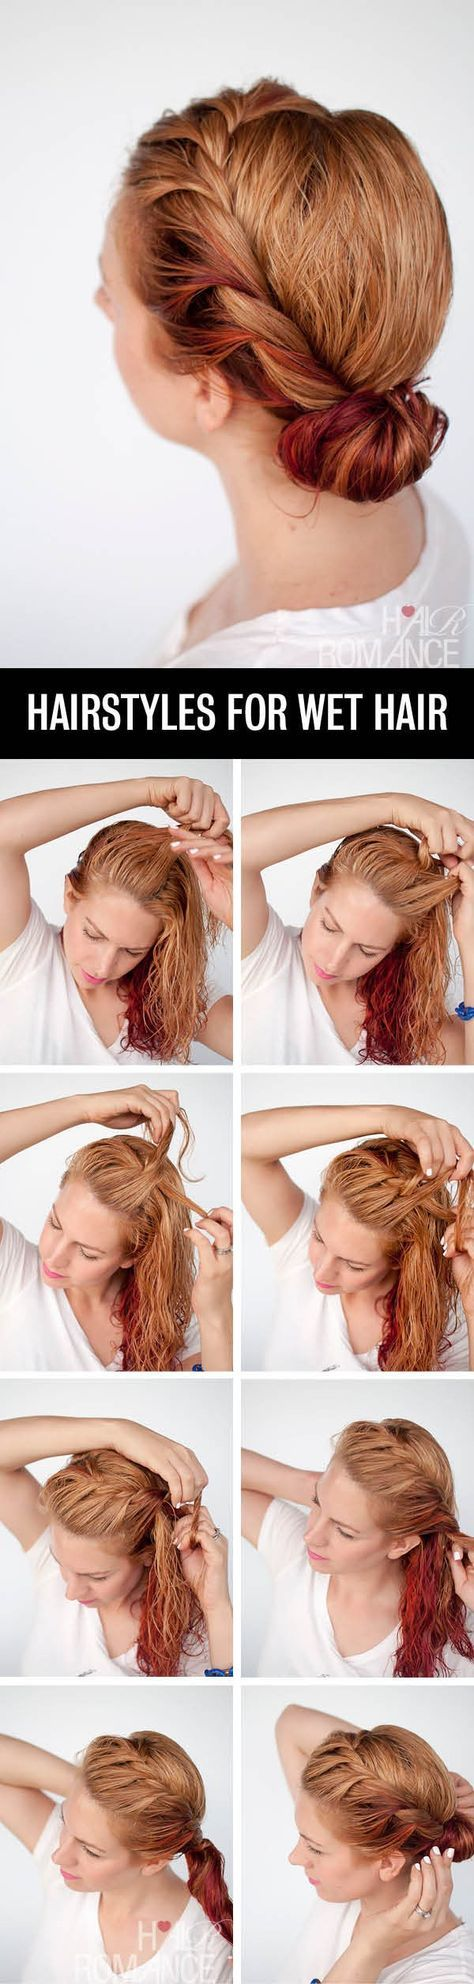 26++ Hairstyles for wet hair trends